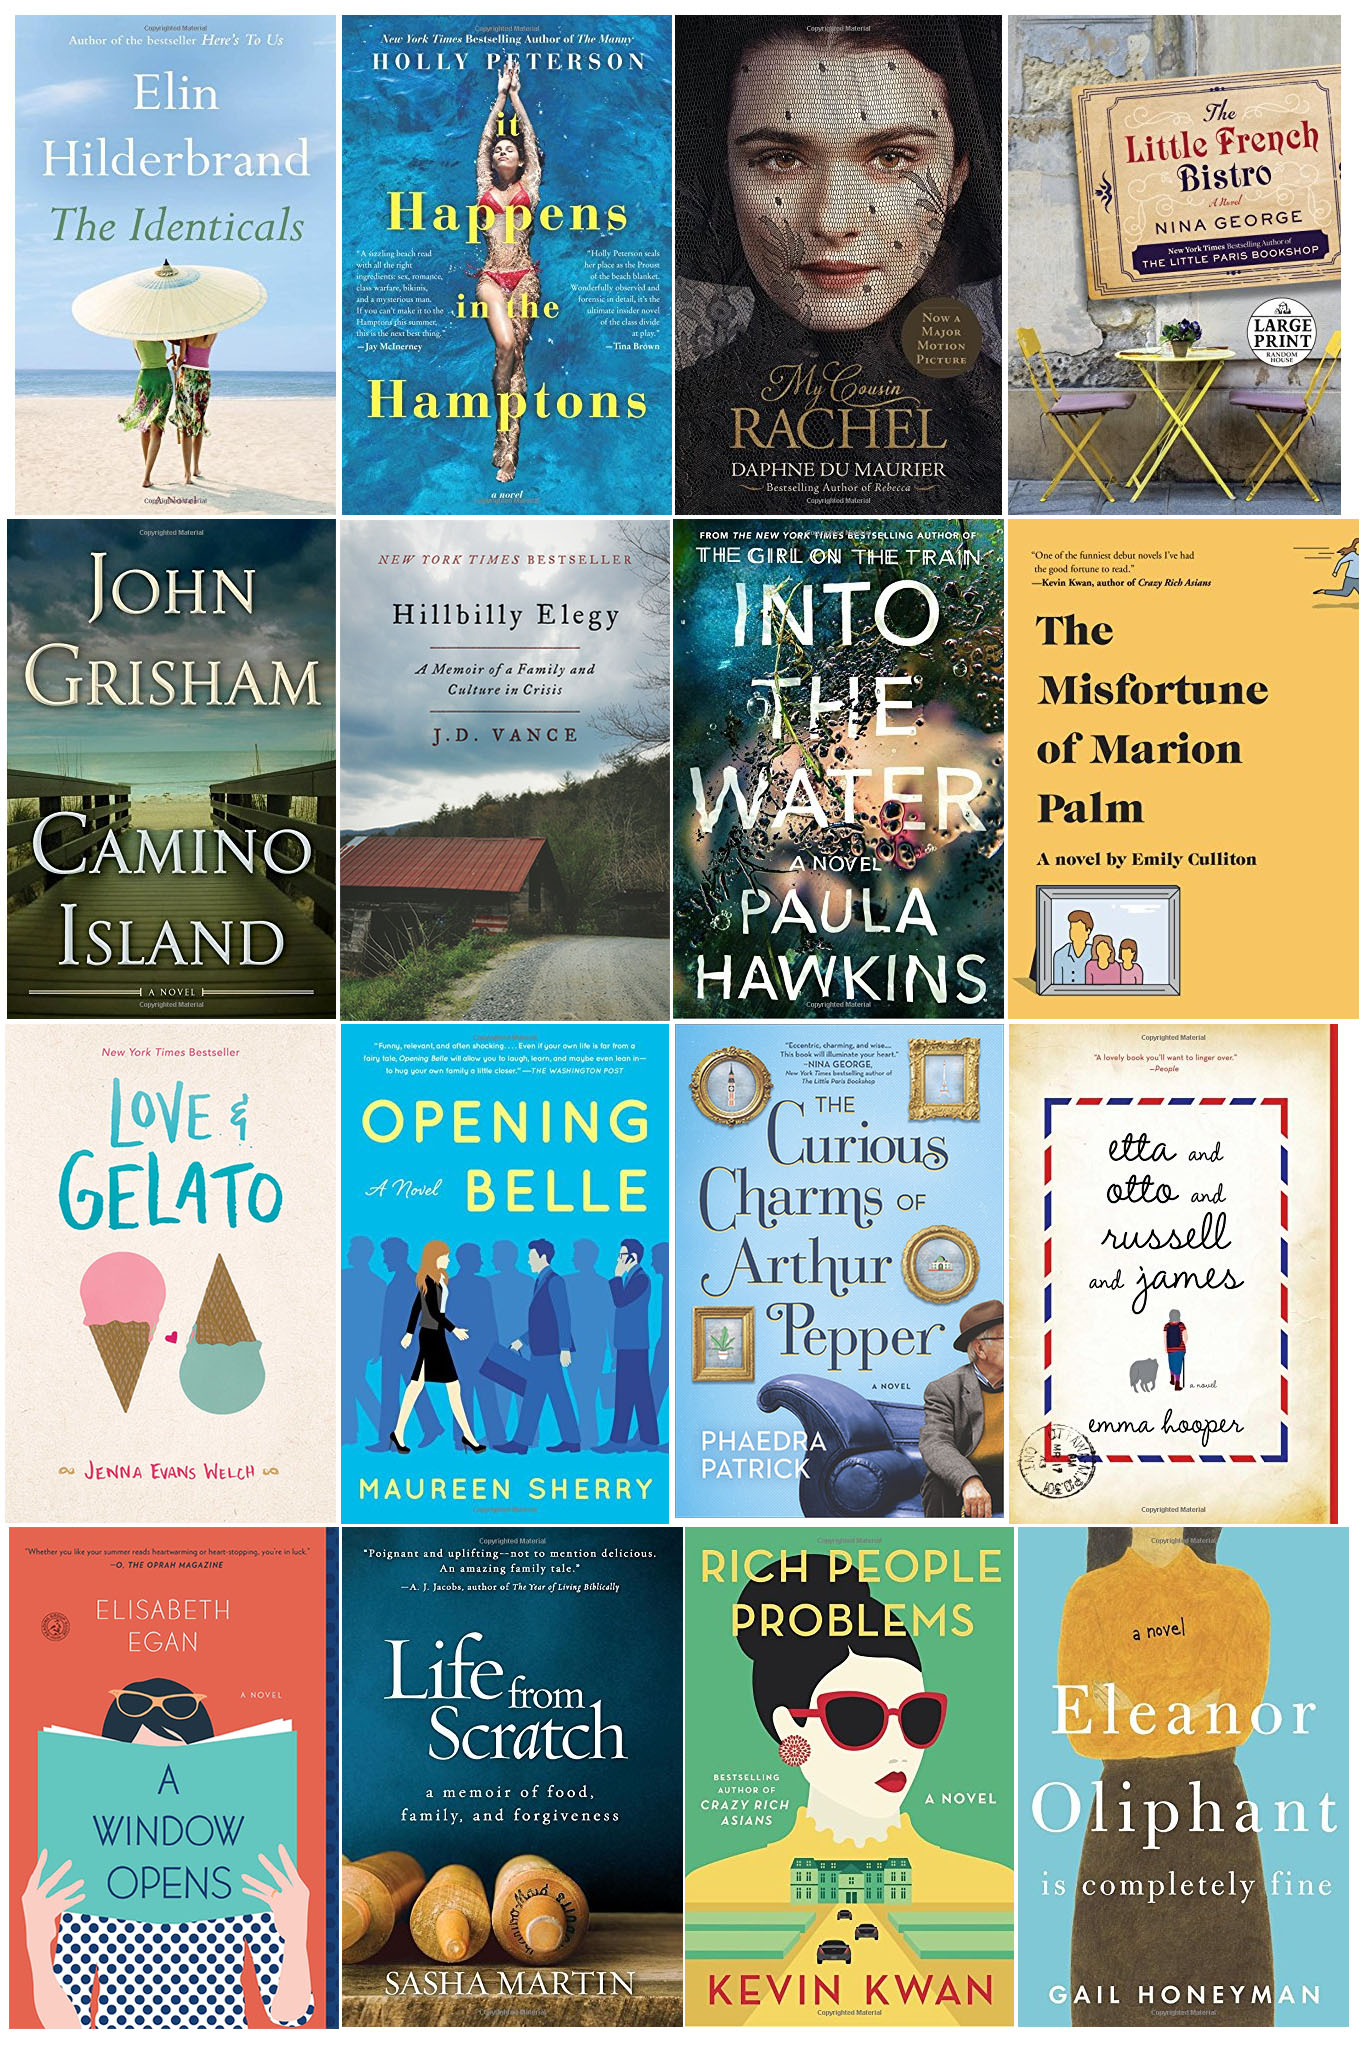 Need a good book to read? Ridgely Brode has selected 16 books to read this Summer and is sharing them on her blog, Ridgely's Radar.